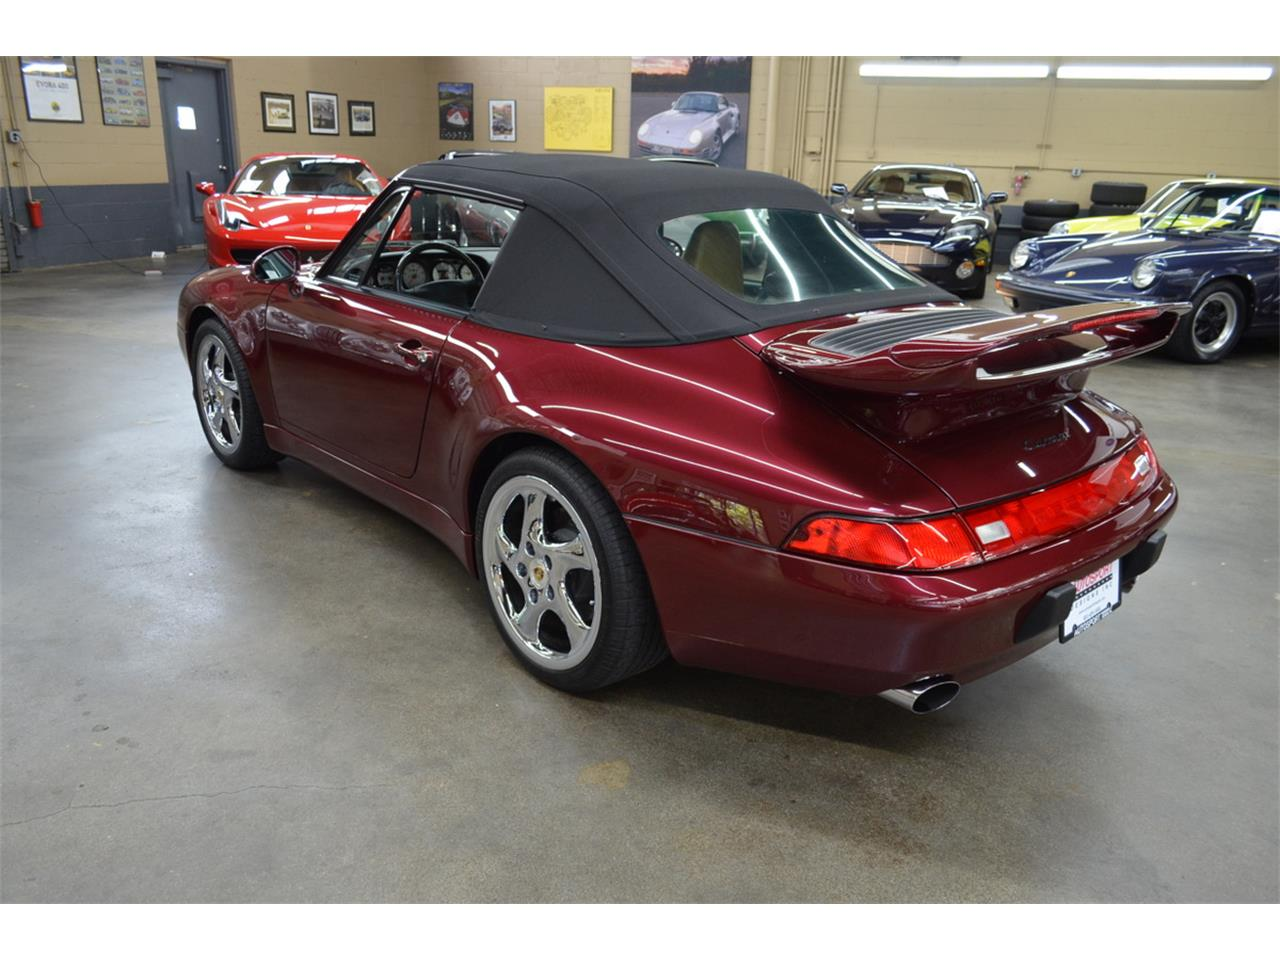 Large Picture of '97 Porsche 911 Carrera located in New York - QG4T